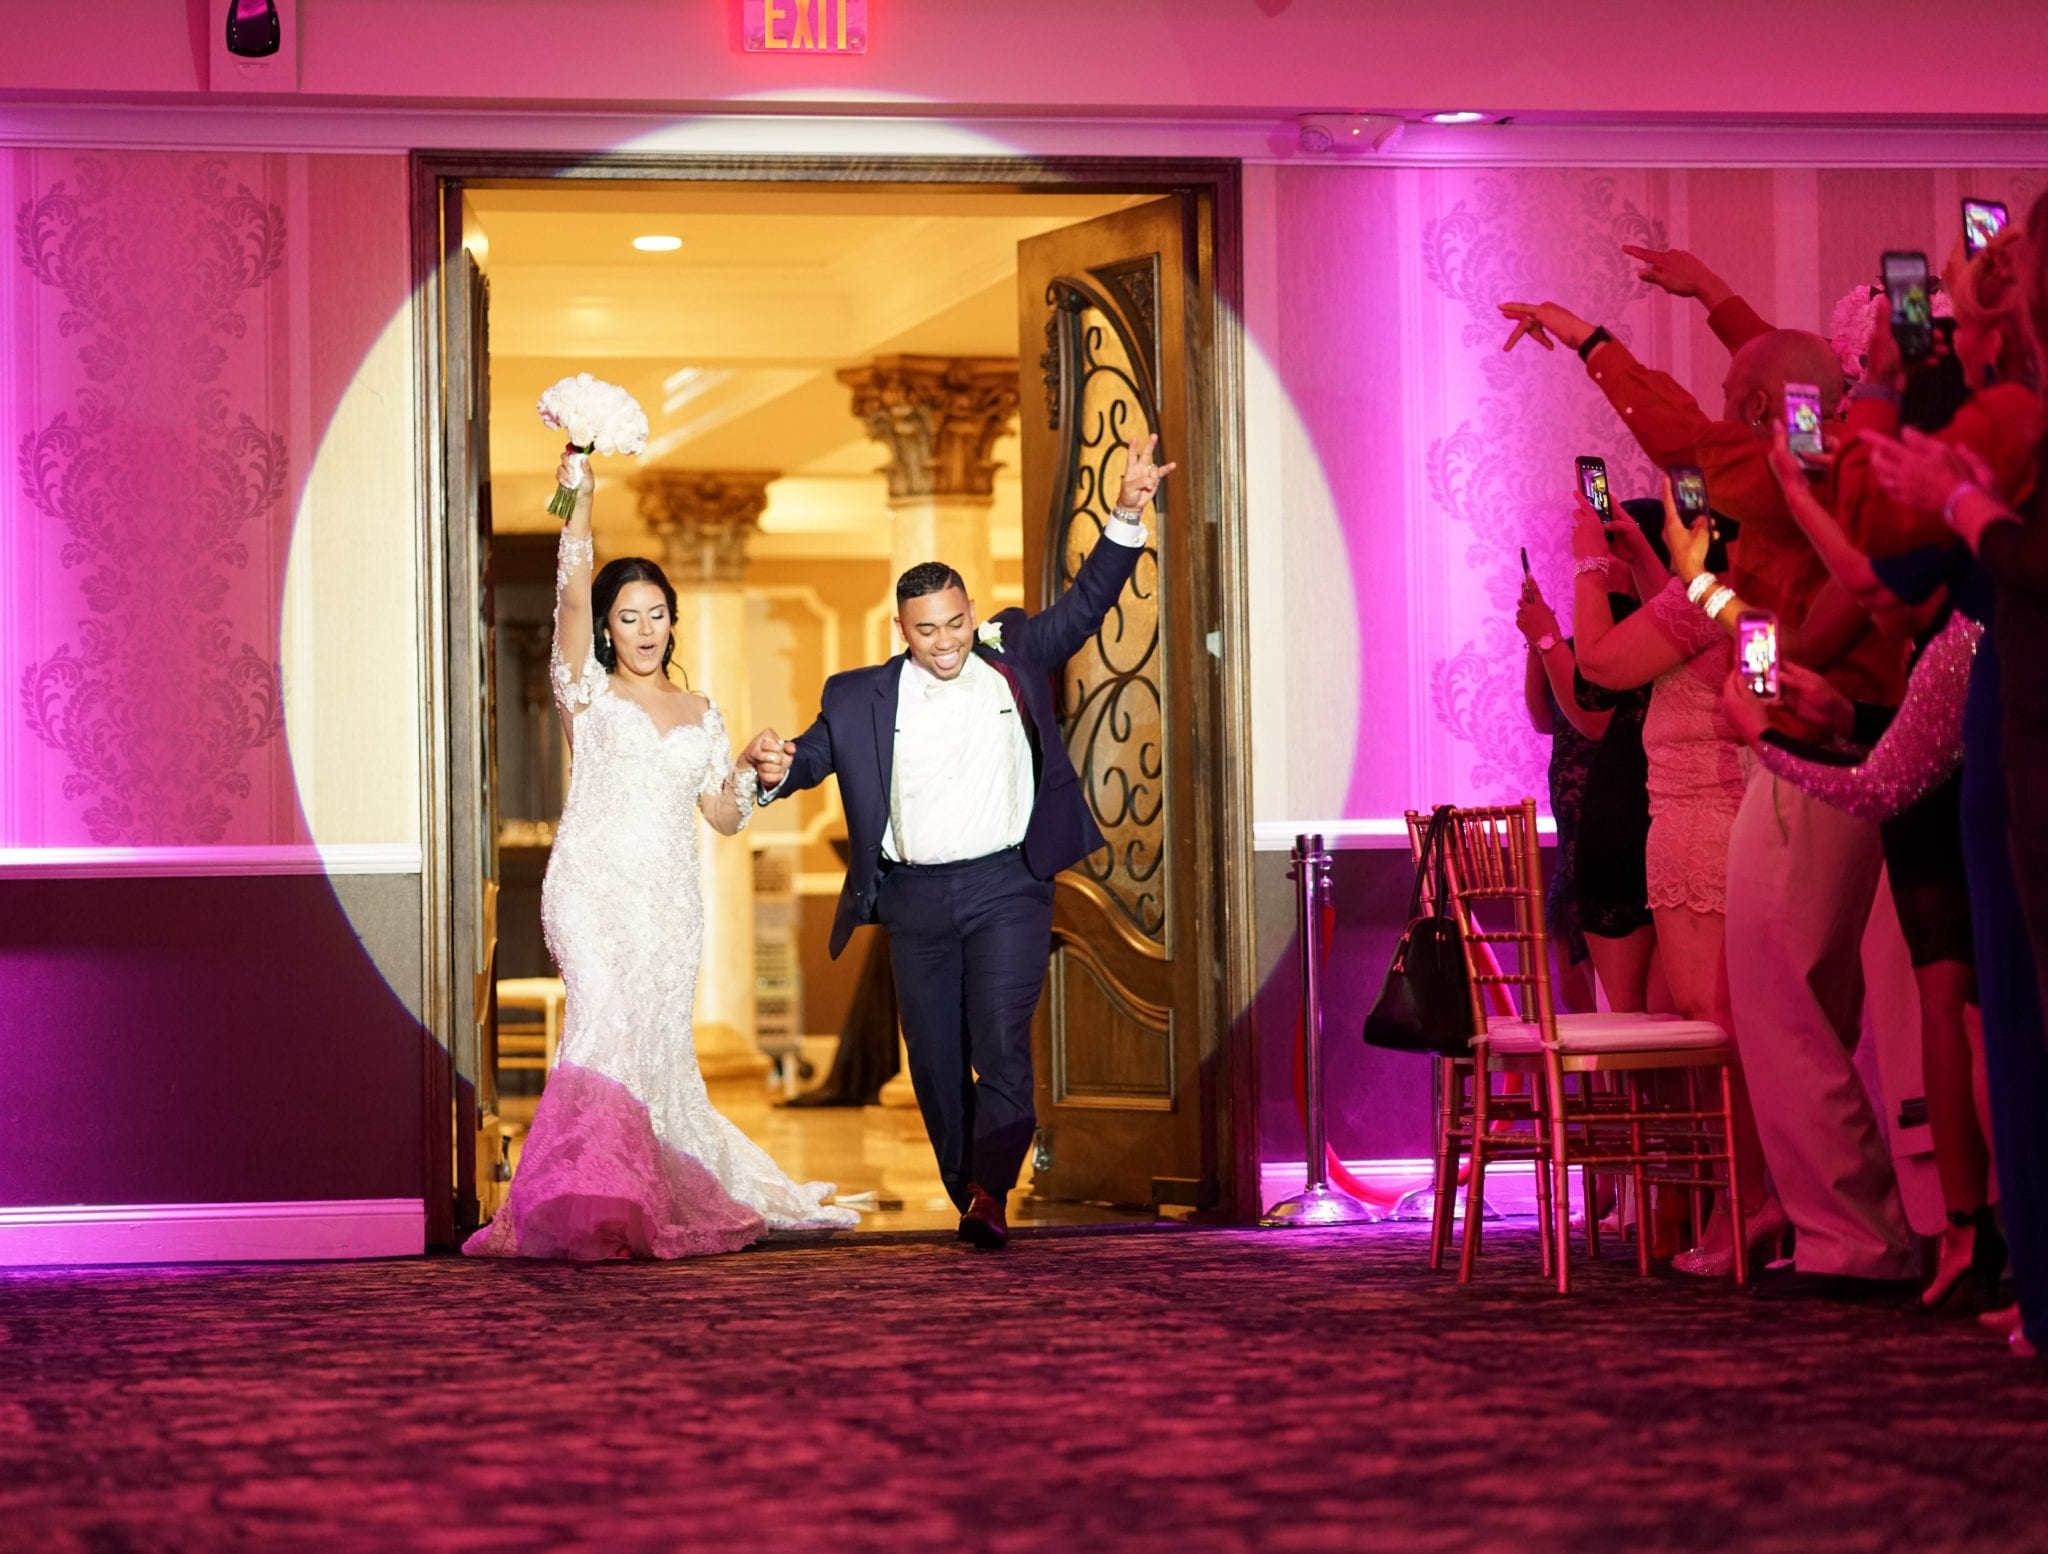 NJ Wedding DJ, Wedding DJ North Jersey, lighting design company in nj, nj spanish wedding dj, latin wedding DJ philadelphia, spanish DJ NJ, spanish wedding DJ